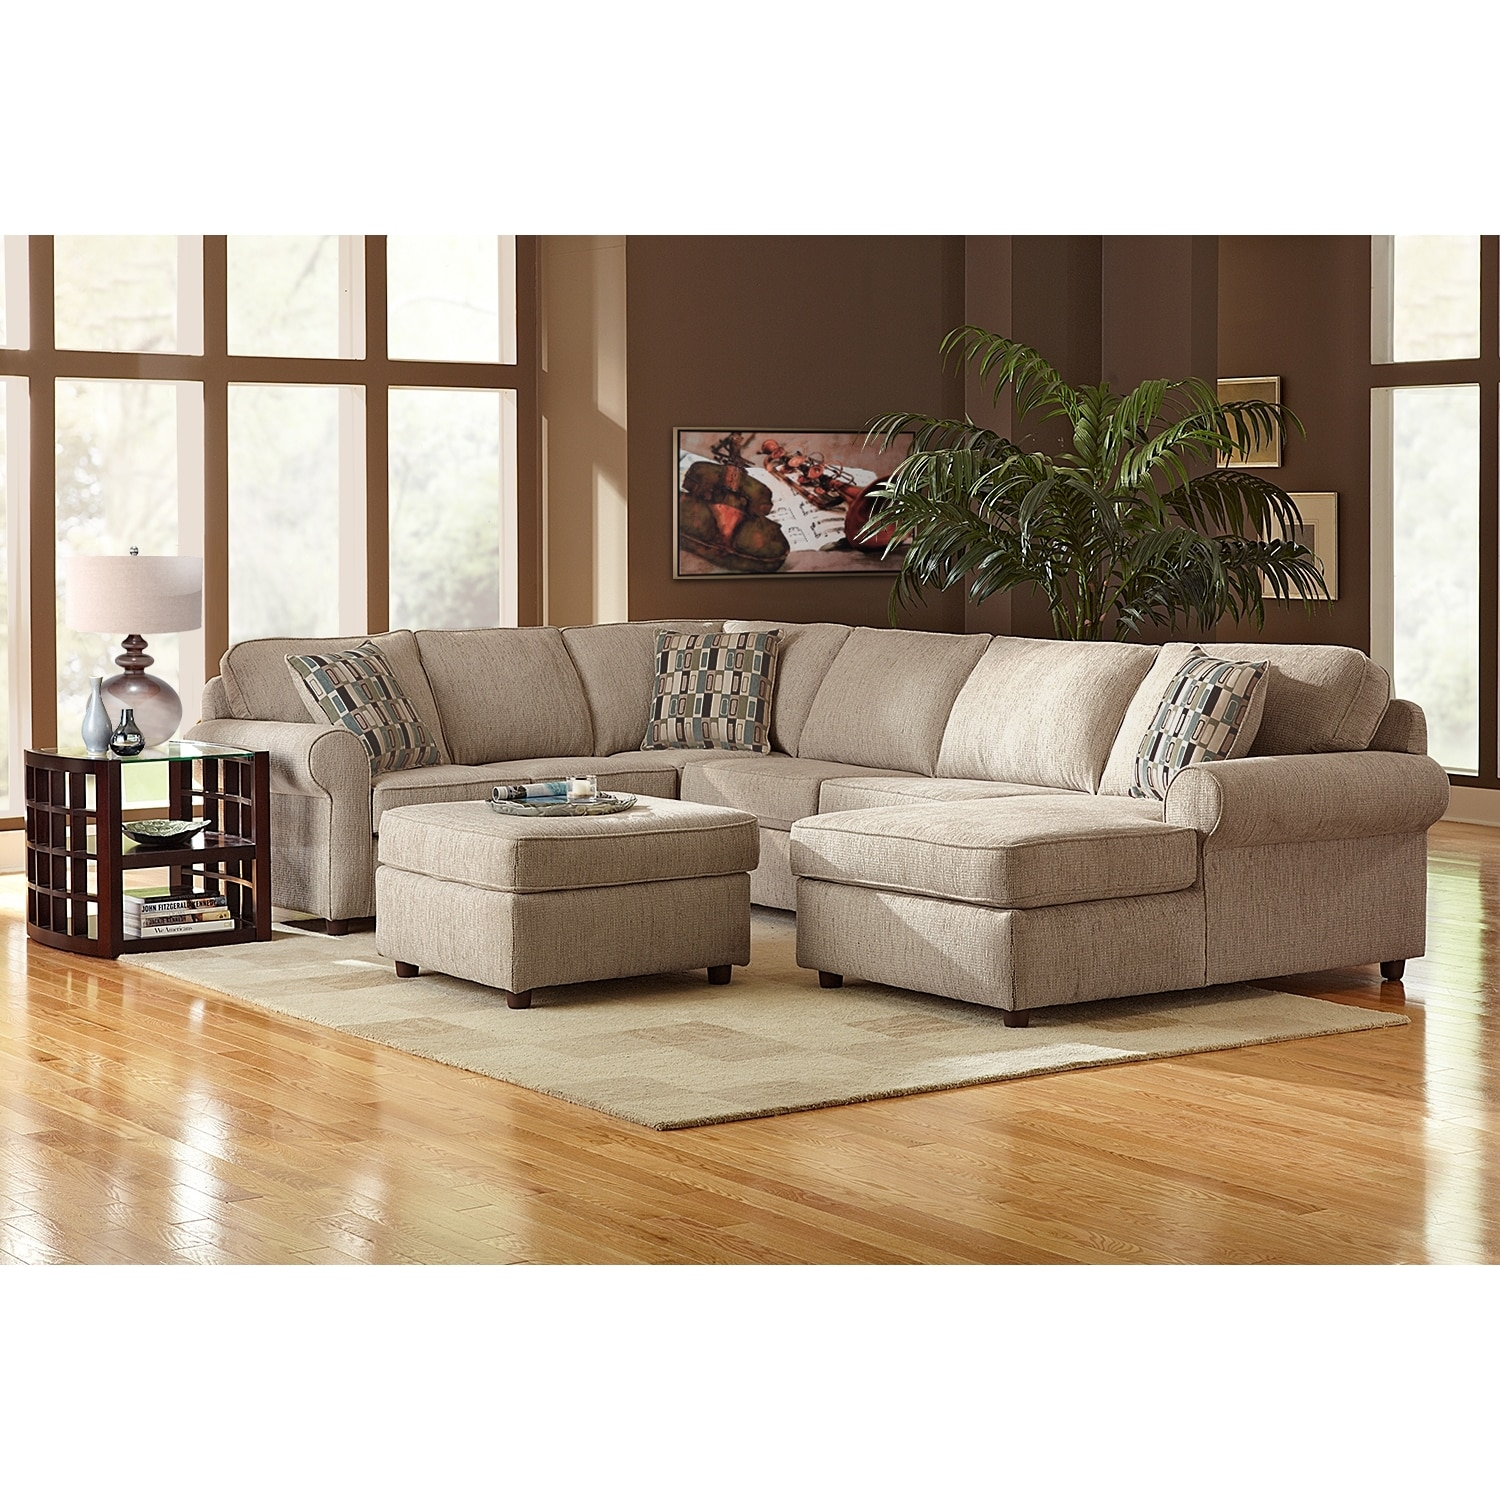 Monarch II Upholstery 3Piece Sectional  Value City Furniture